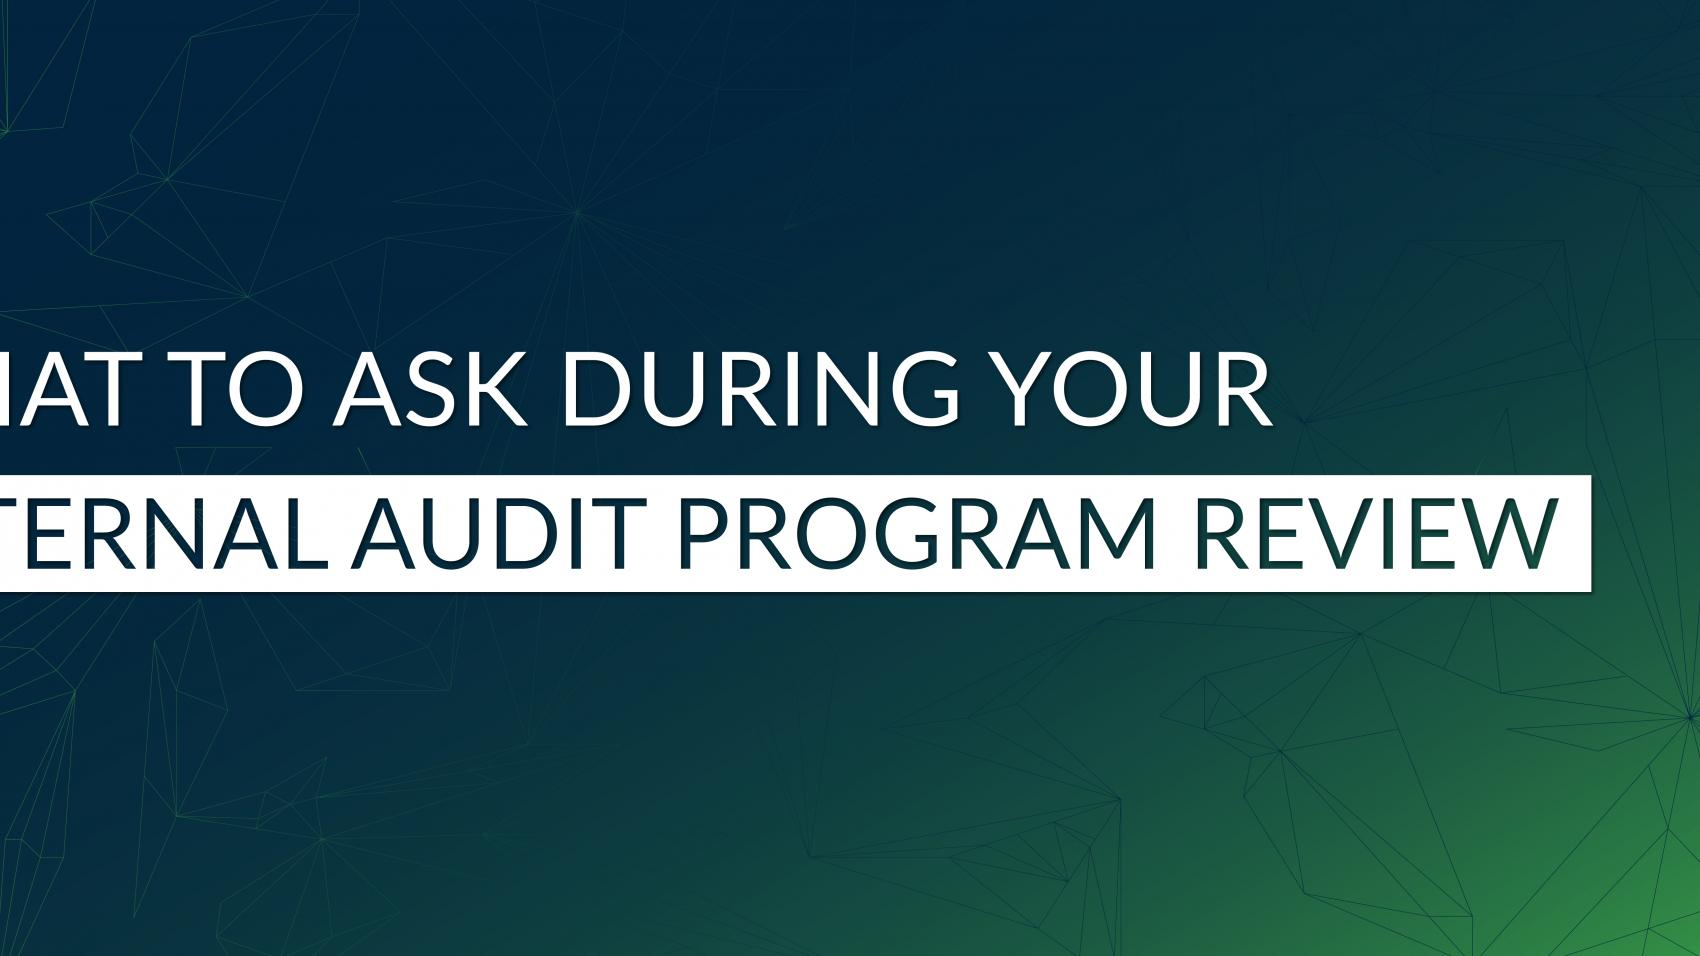 what to ask during an internal audit program review